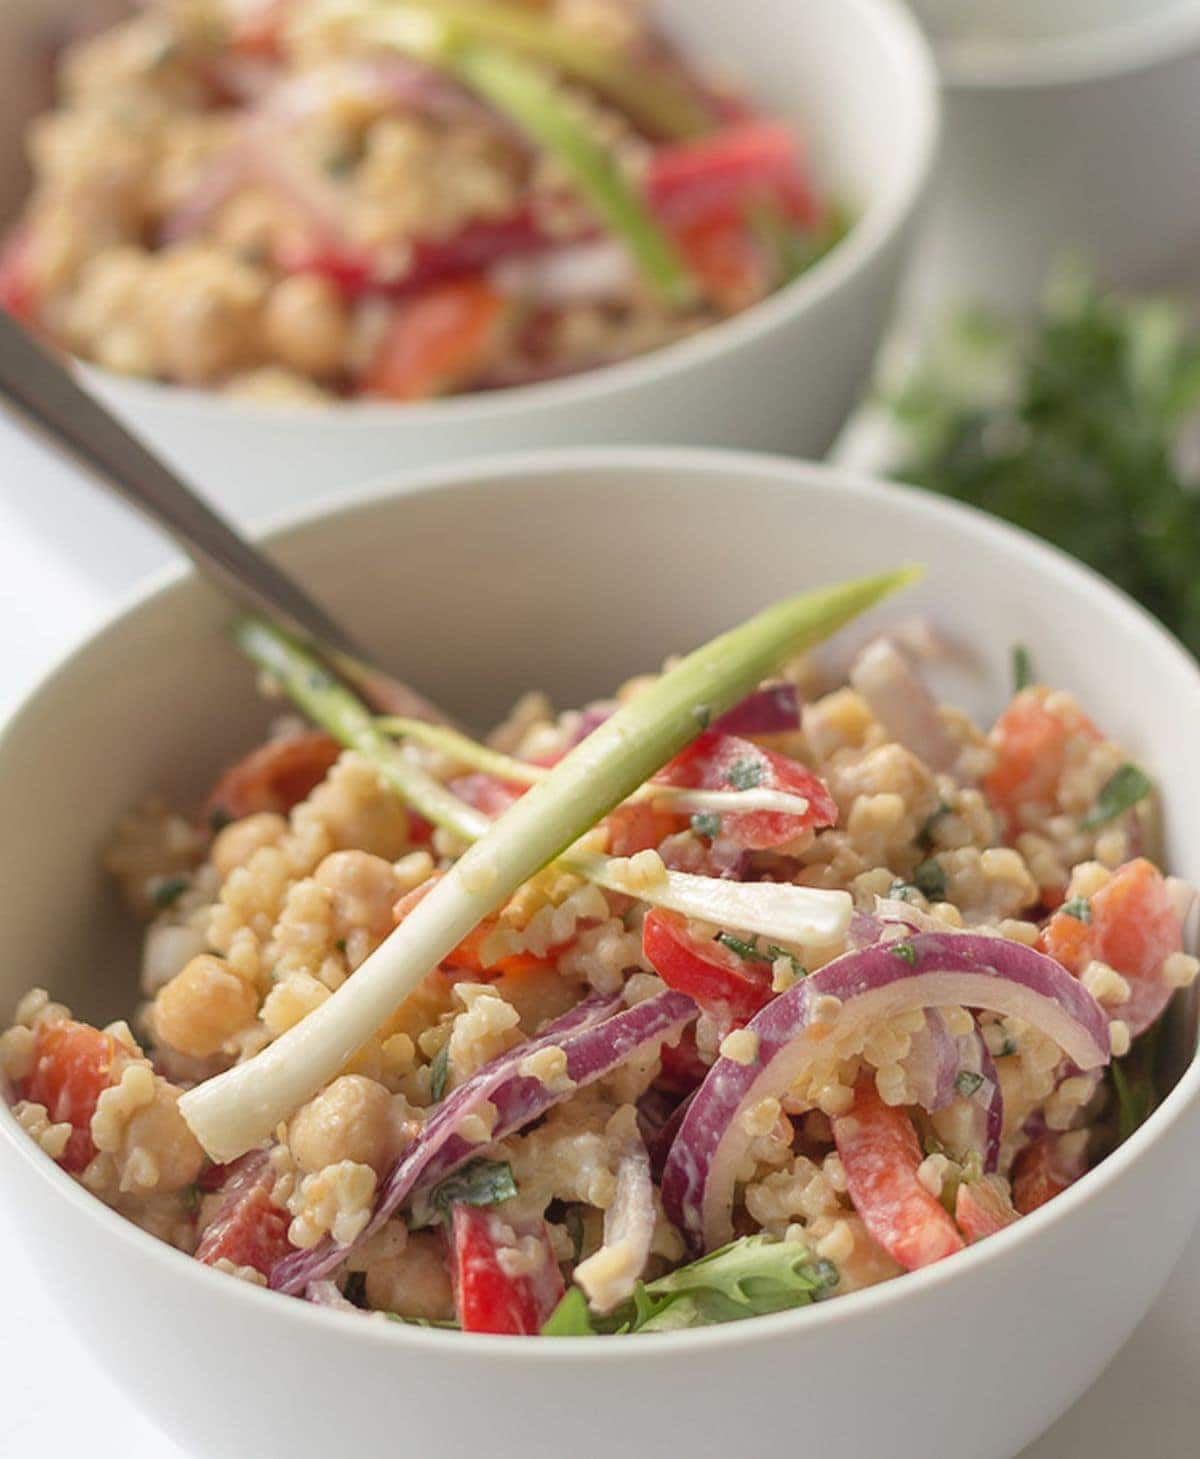 Two bowls of bulgur chickpea salad one in front of the other garnished with spring onions.